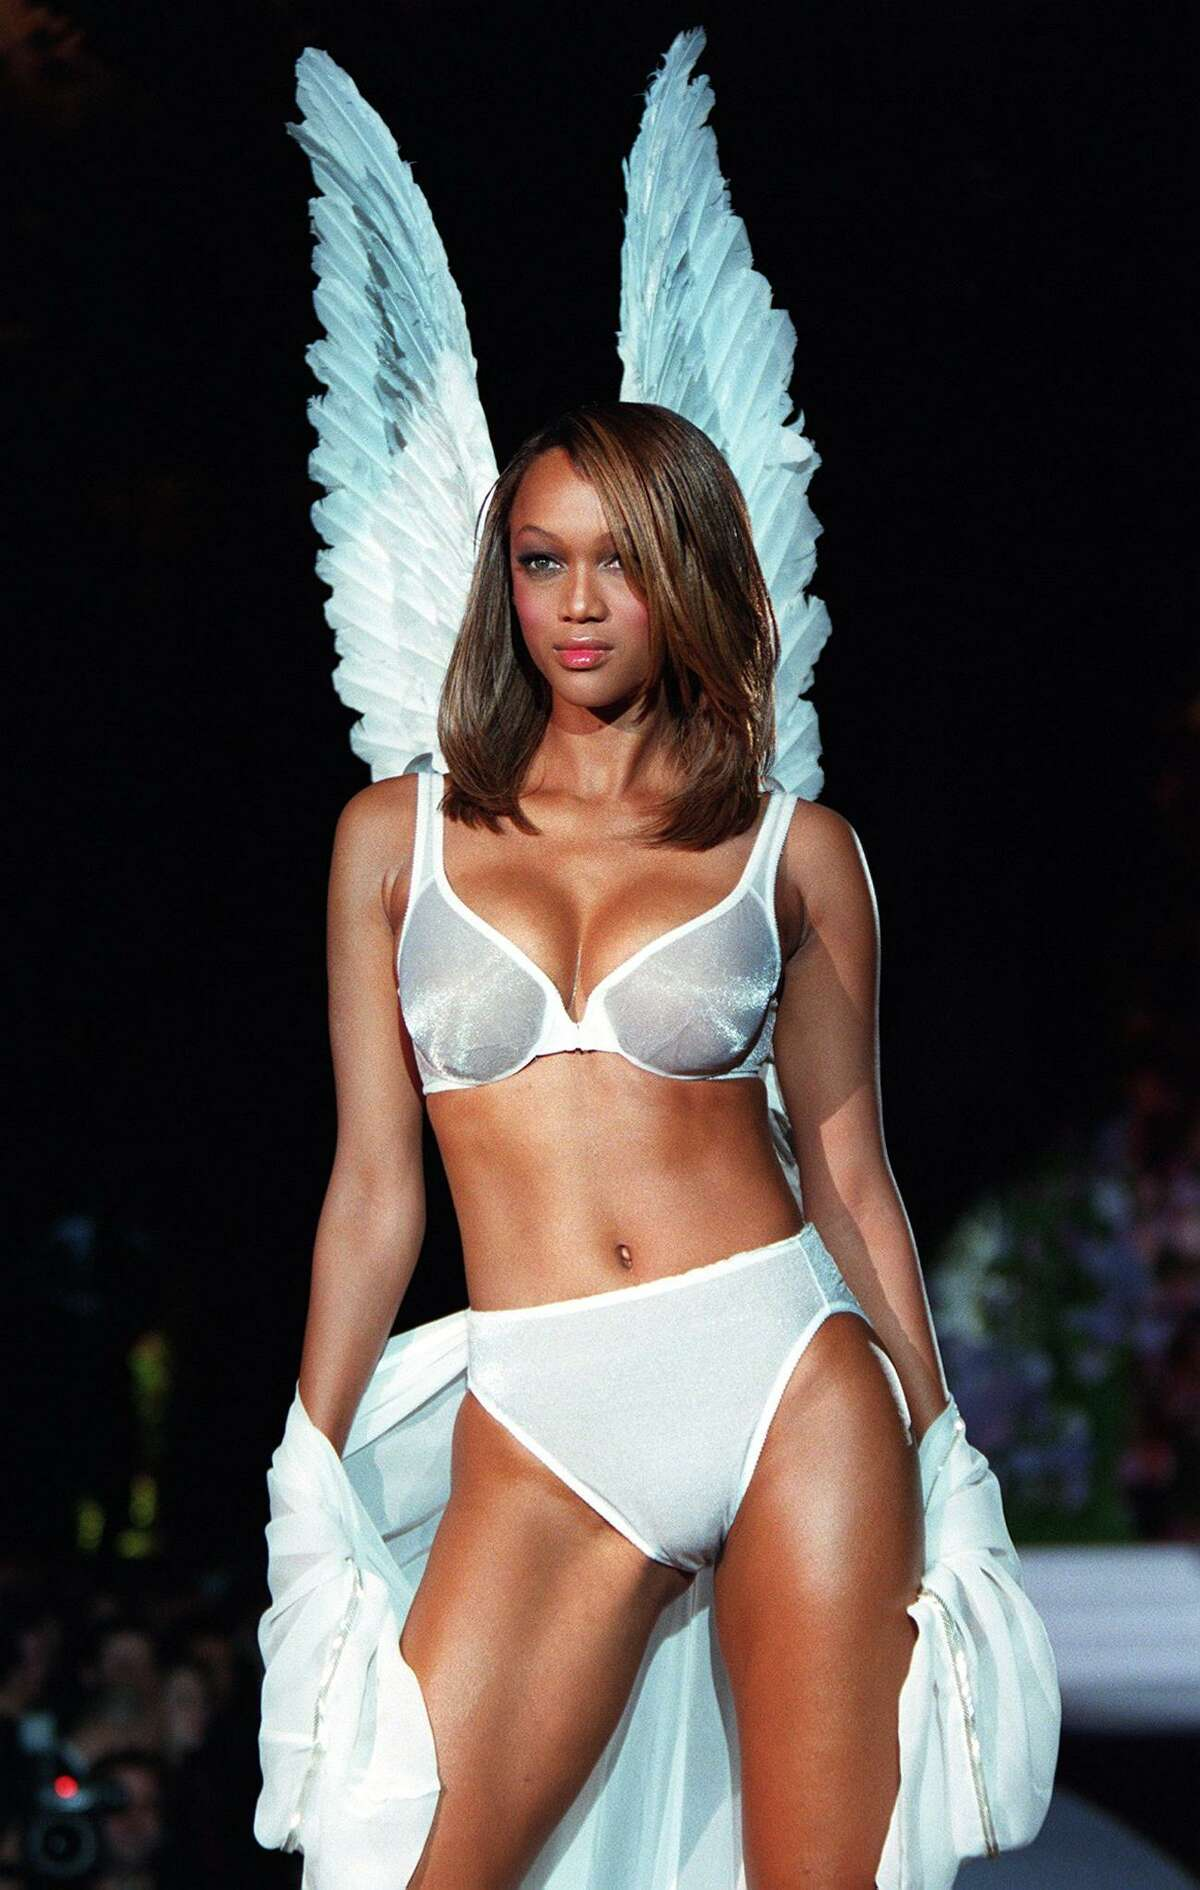 Model Tyra Banks wears a white Angel bra and matching panties with white Angel wings during the Victoria's Secret Spring 1998 Fashion show 03 February in New York. AFP PHOTO/Jon LEVY